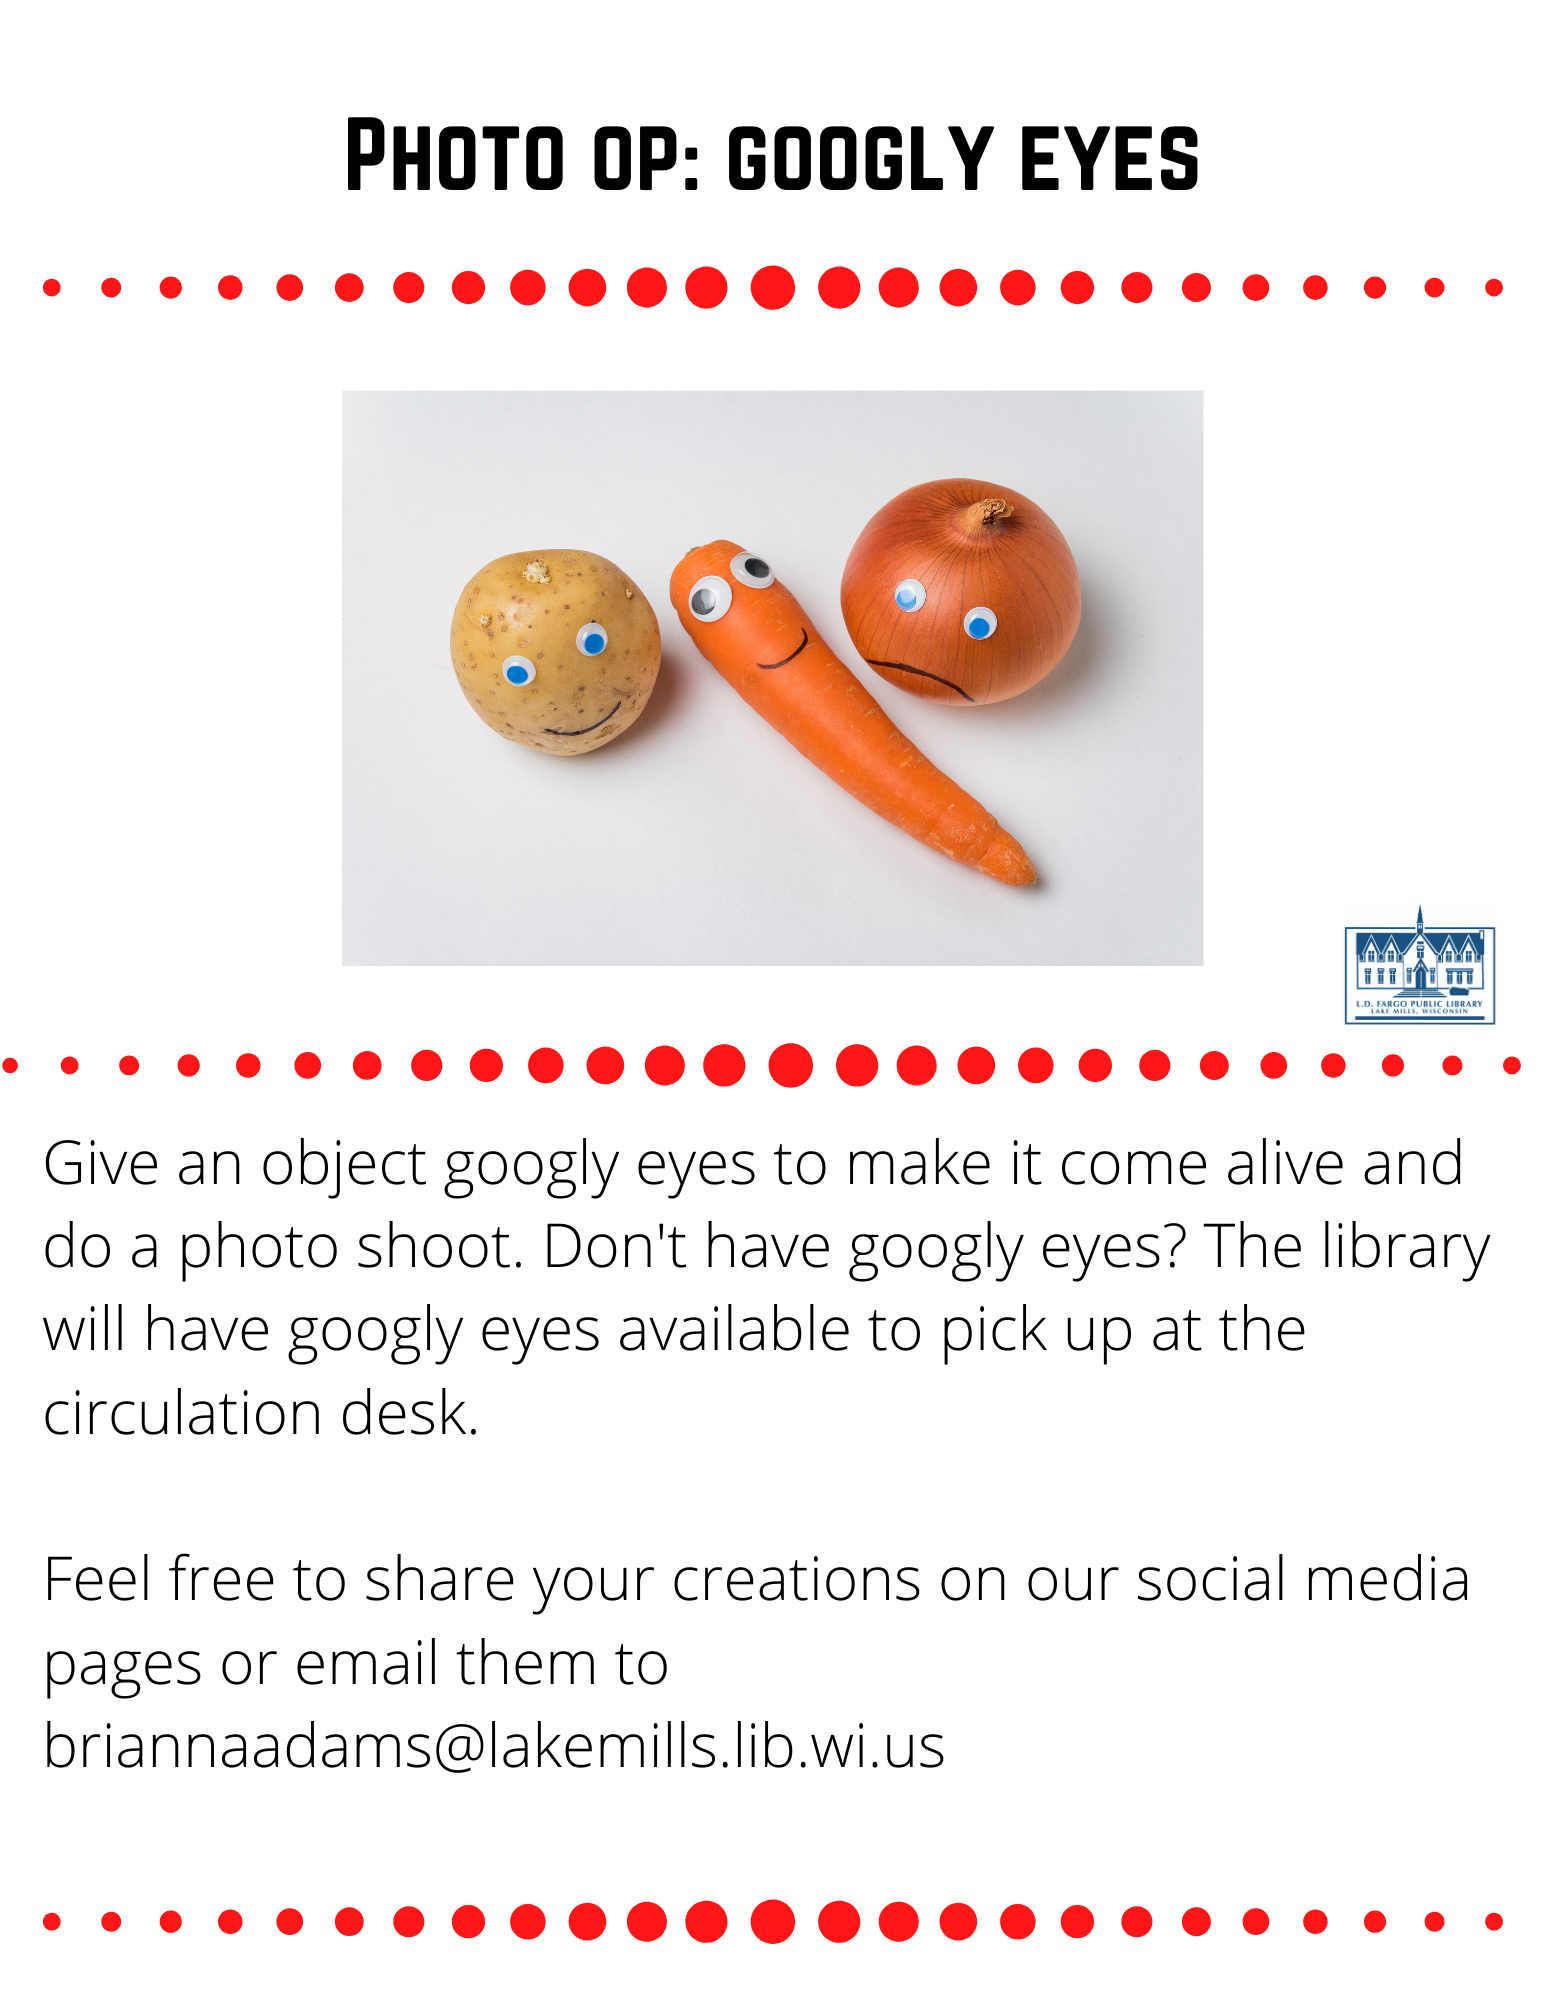 Photo op: googly eyes  Give an object googly eyes to make it come alive and do a photo shoot. Don't have googly eyes? The library will have googly eyes available to pick up at the circulation desk.  Feel free to share your creations on our social media pages or email them to briannaadams@lakemills.lib.wi.us